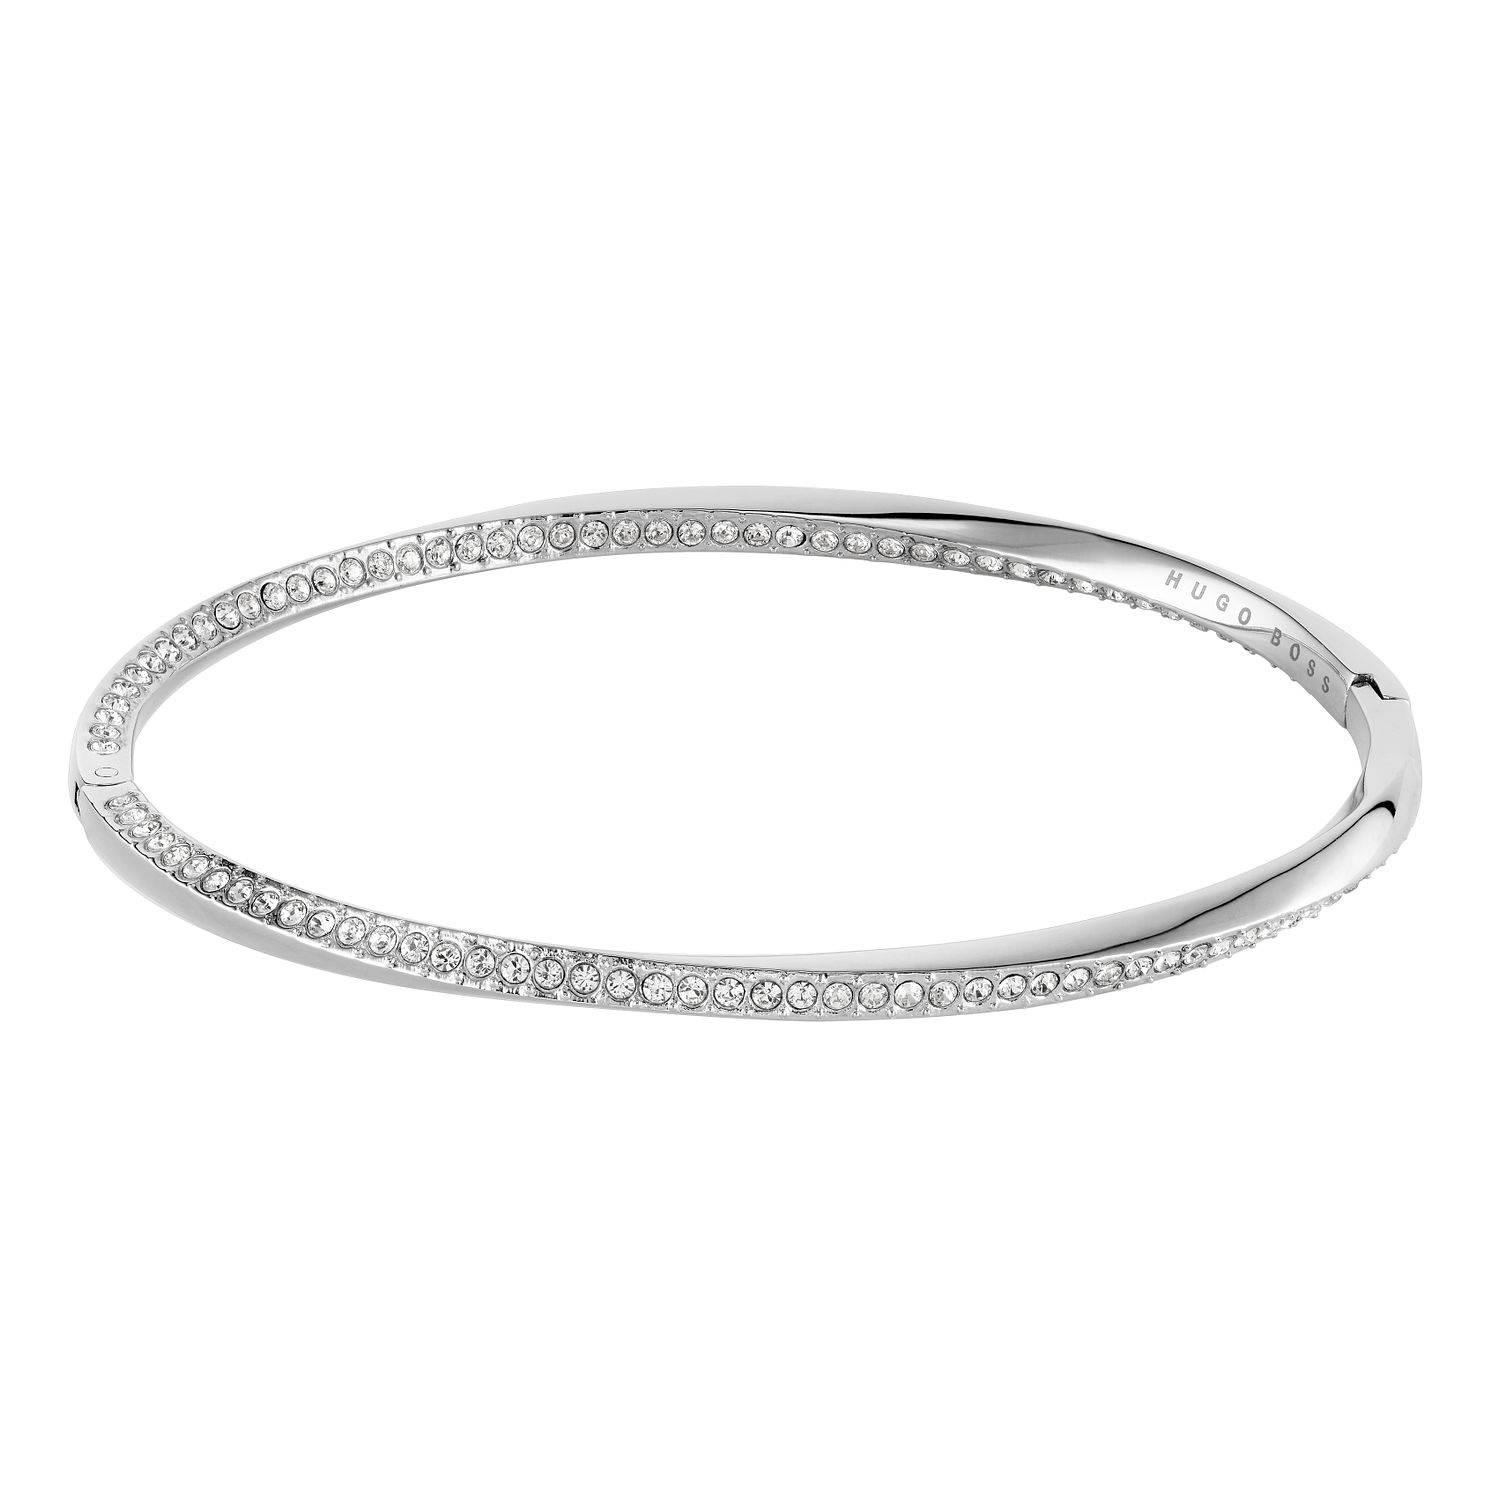 BOSS Signature Crystal Ladies' Stainless Steel Bangle - Product number 3856283